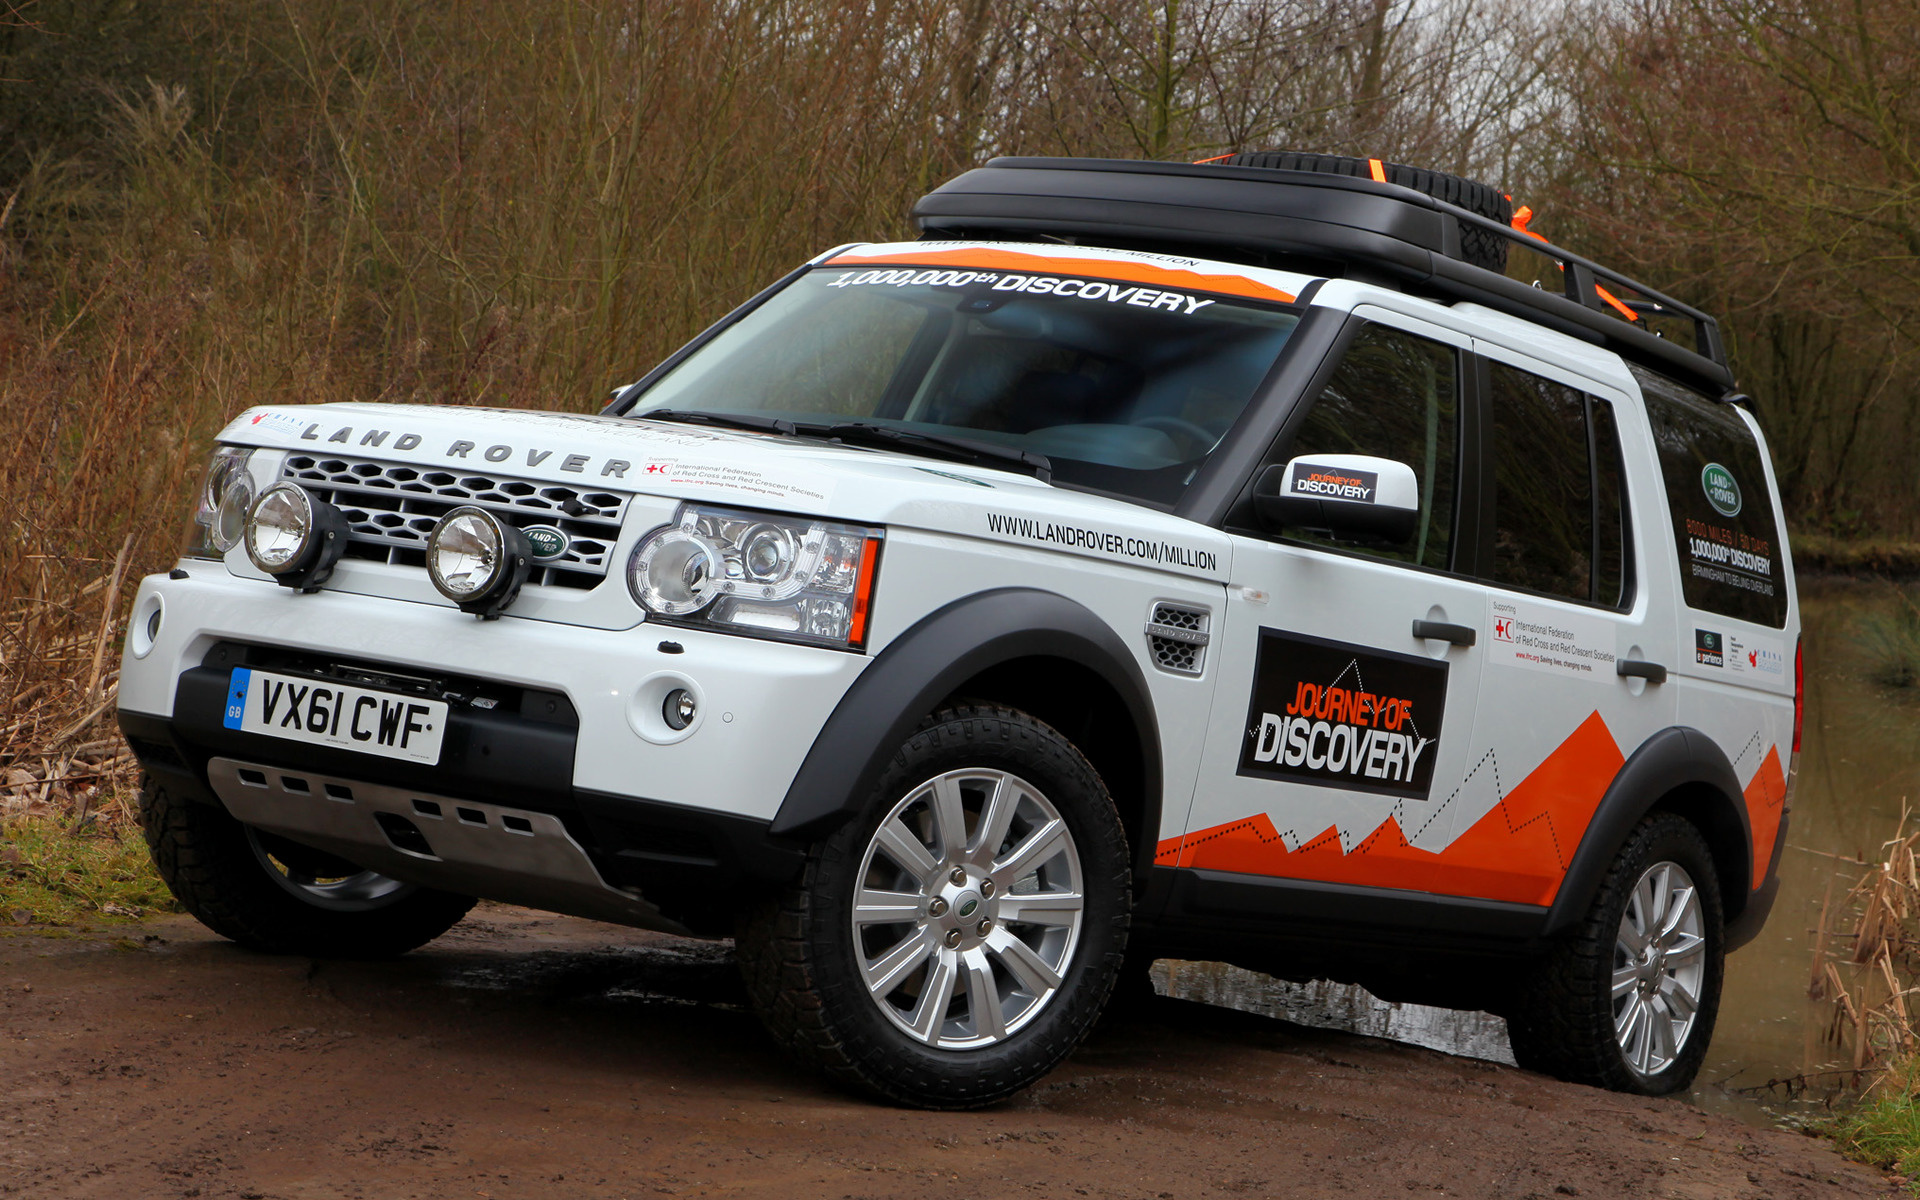 2012 land rover discovery 4 expedition vehicle